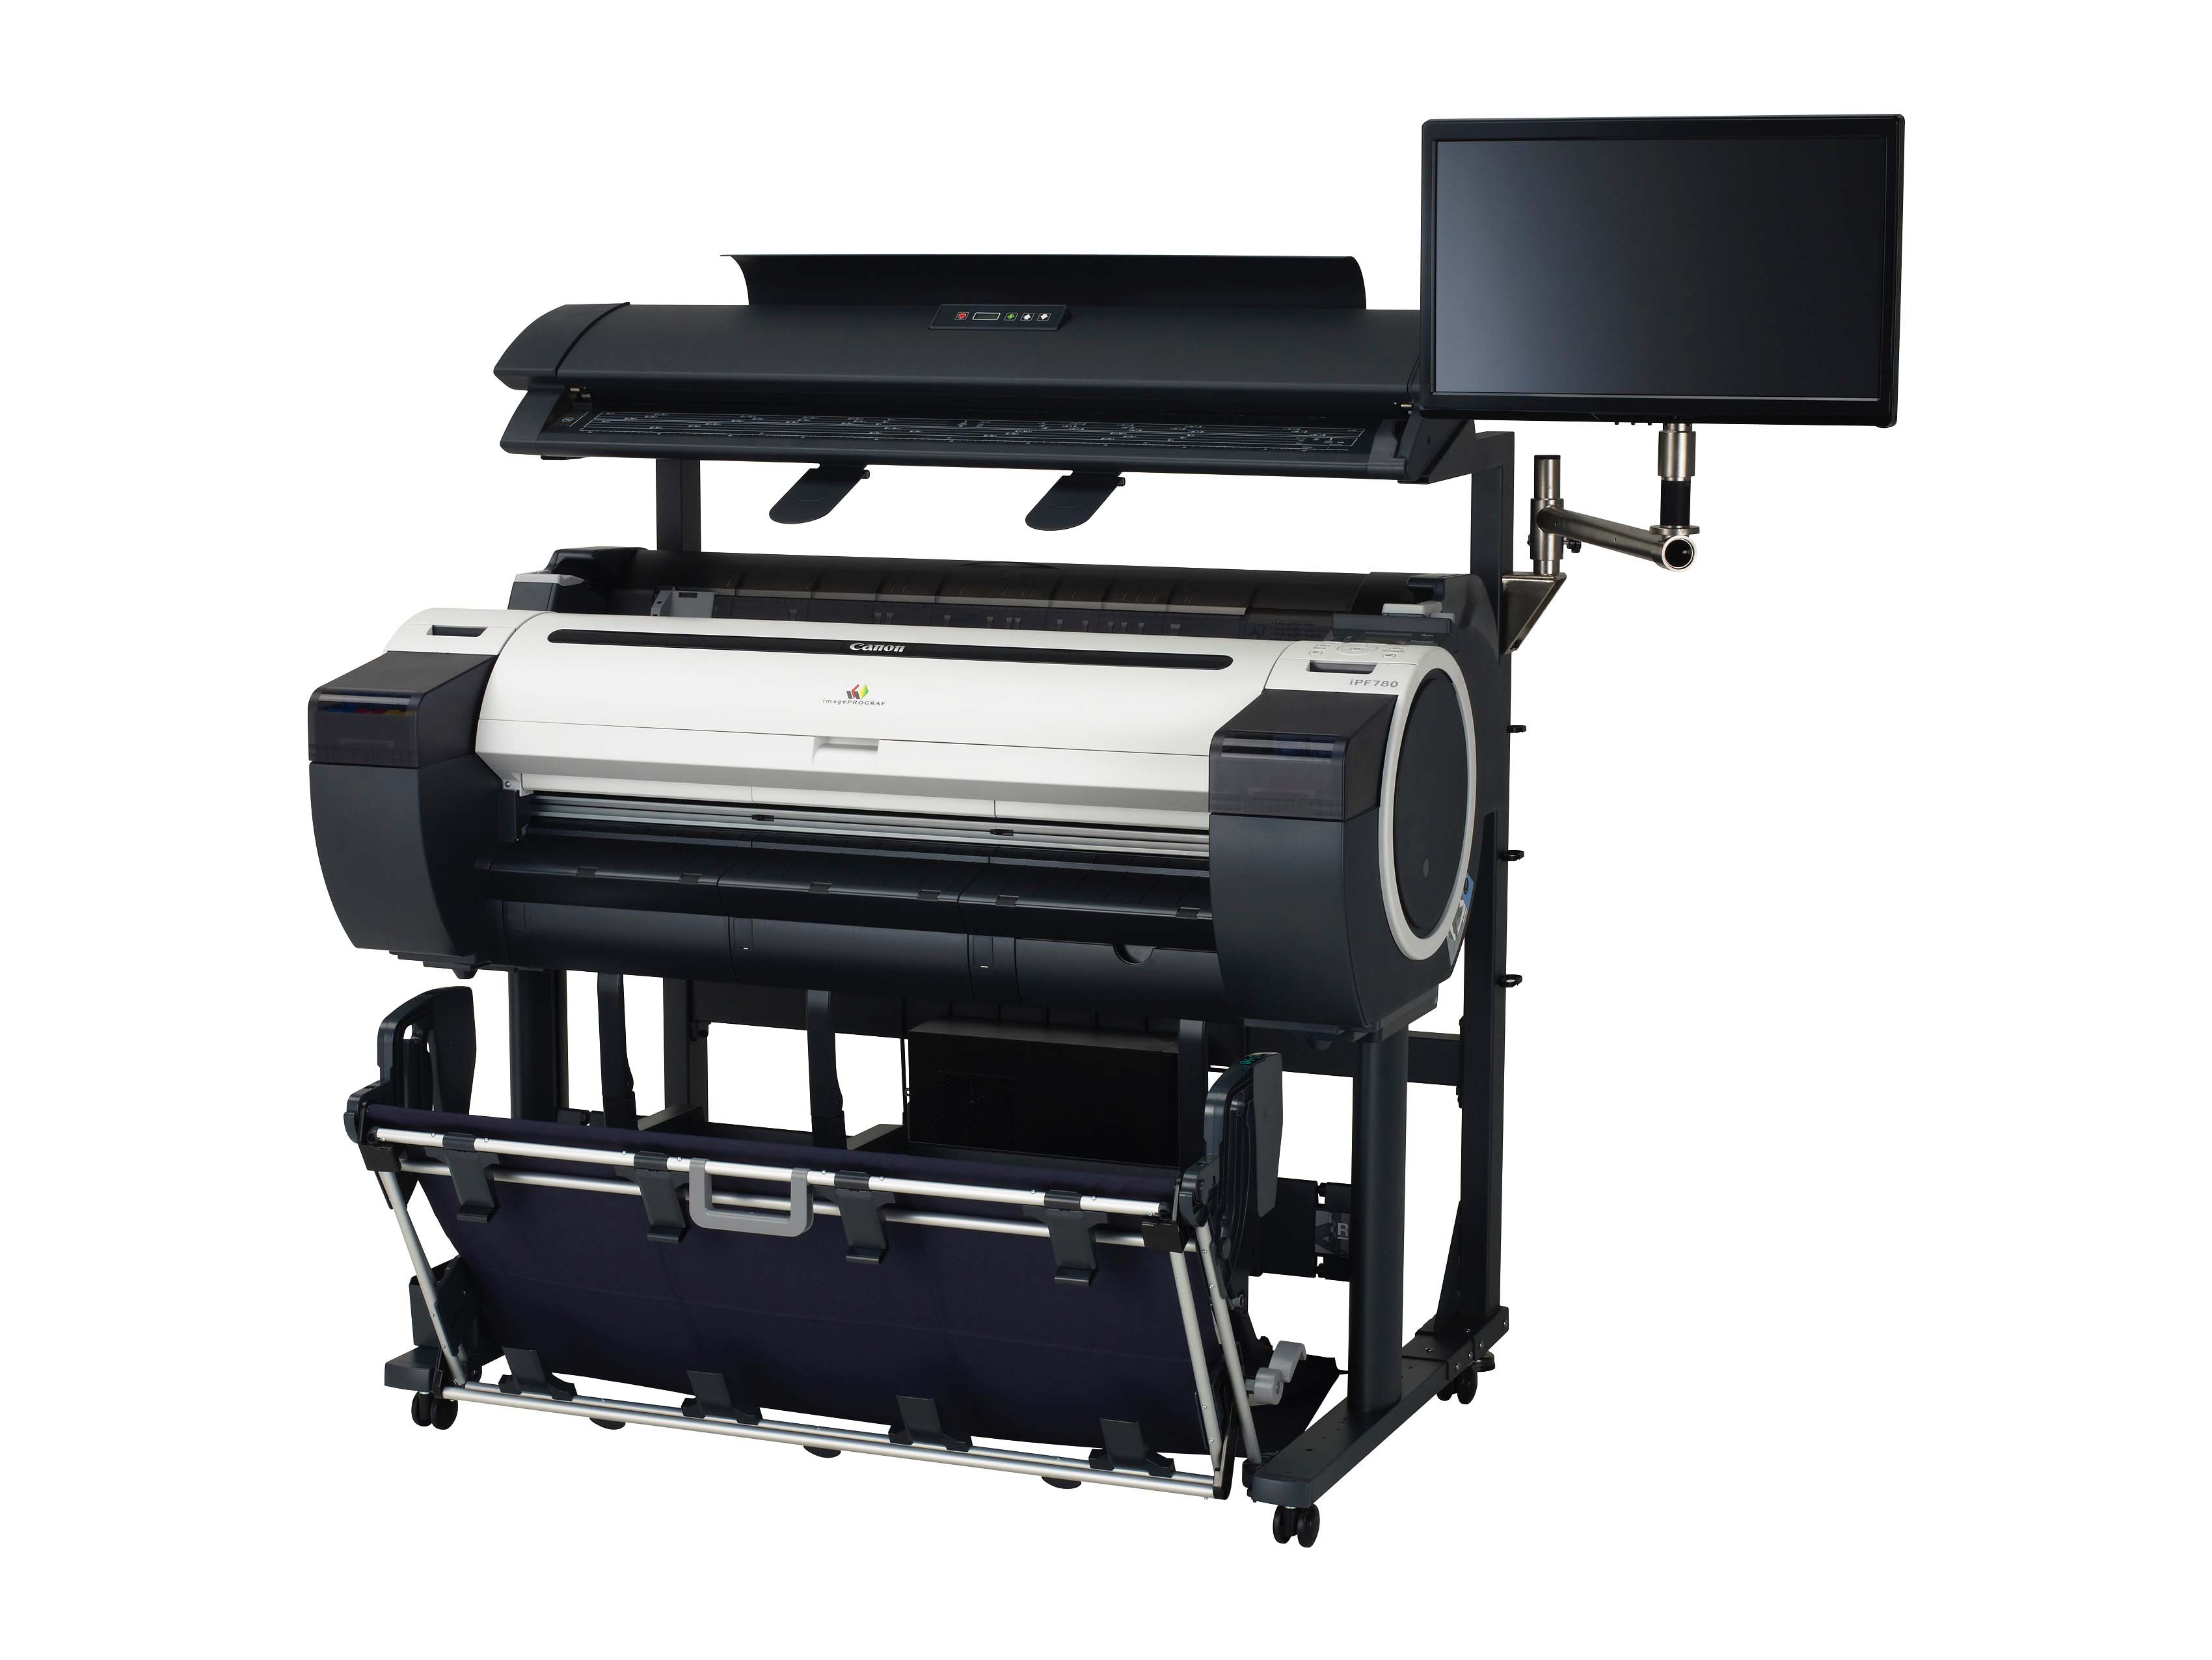 Canon M40 with iPF780 MFP